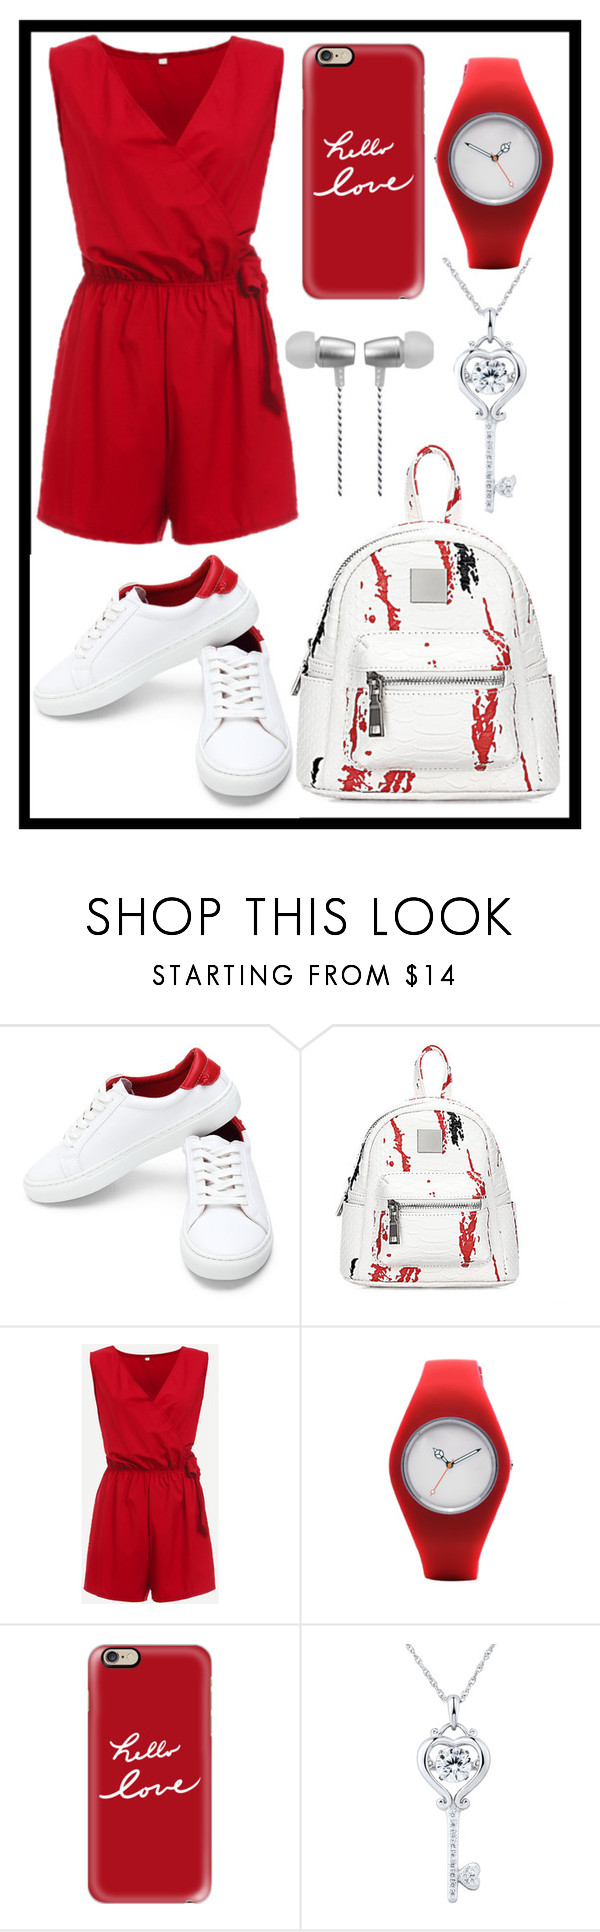 """""""389: Red and White"""" by alinepelle ❤ liked on Polyvore featuring Casetify and Cynthia Rowley"""